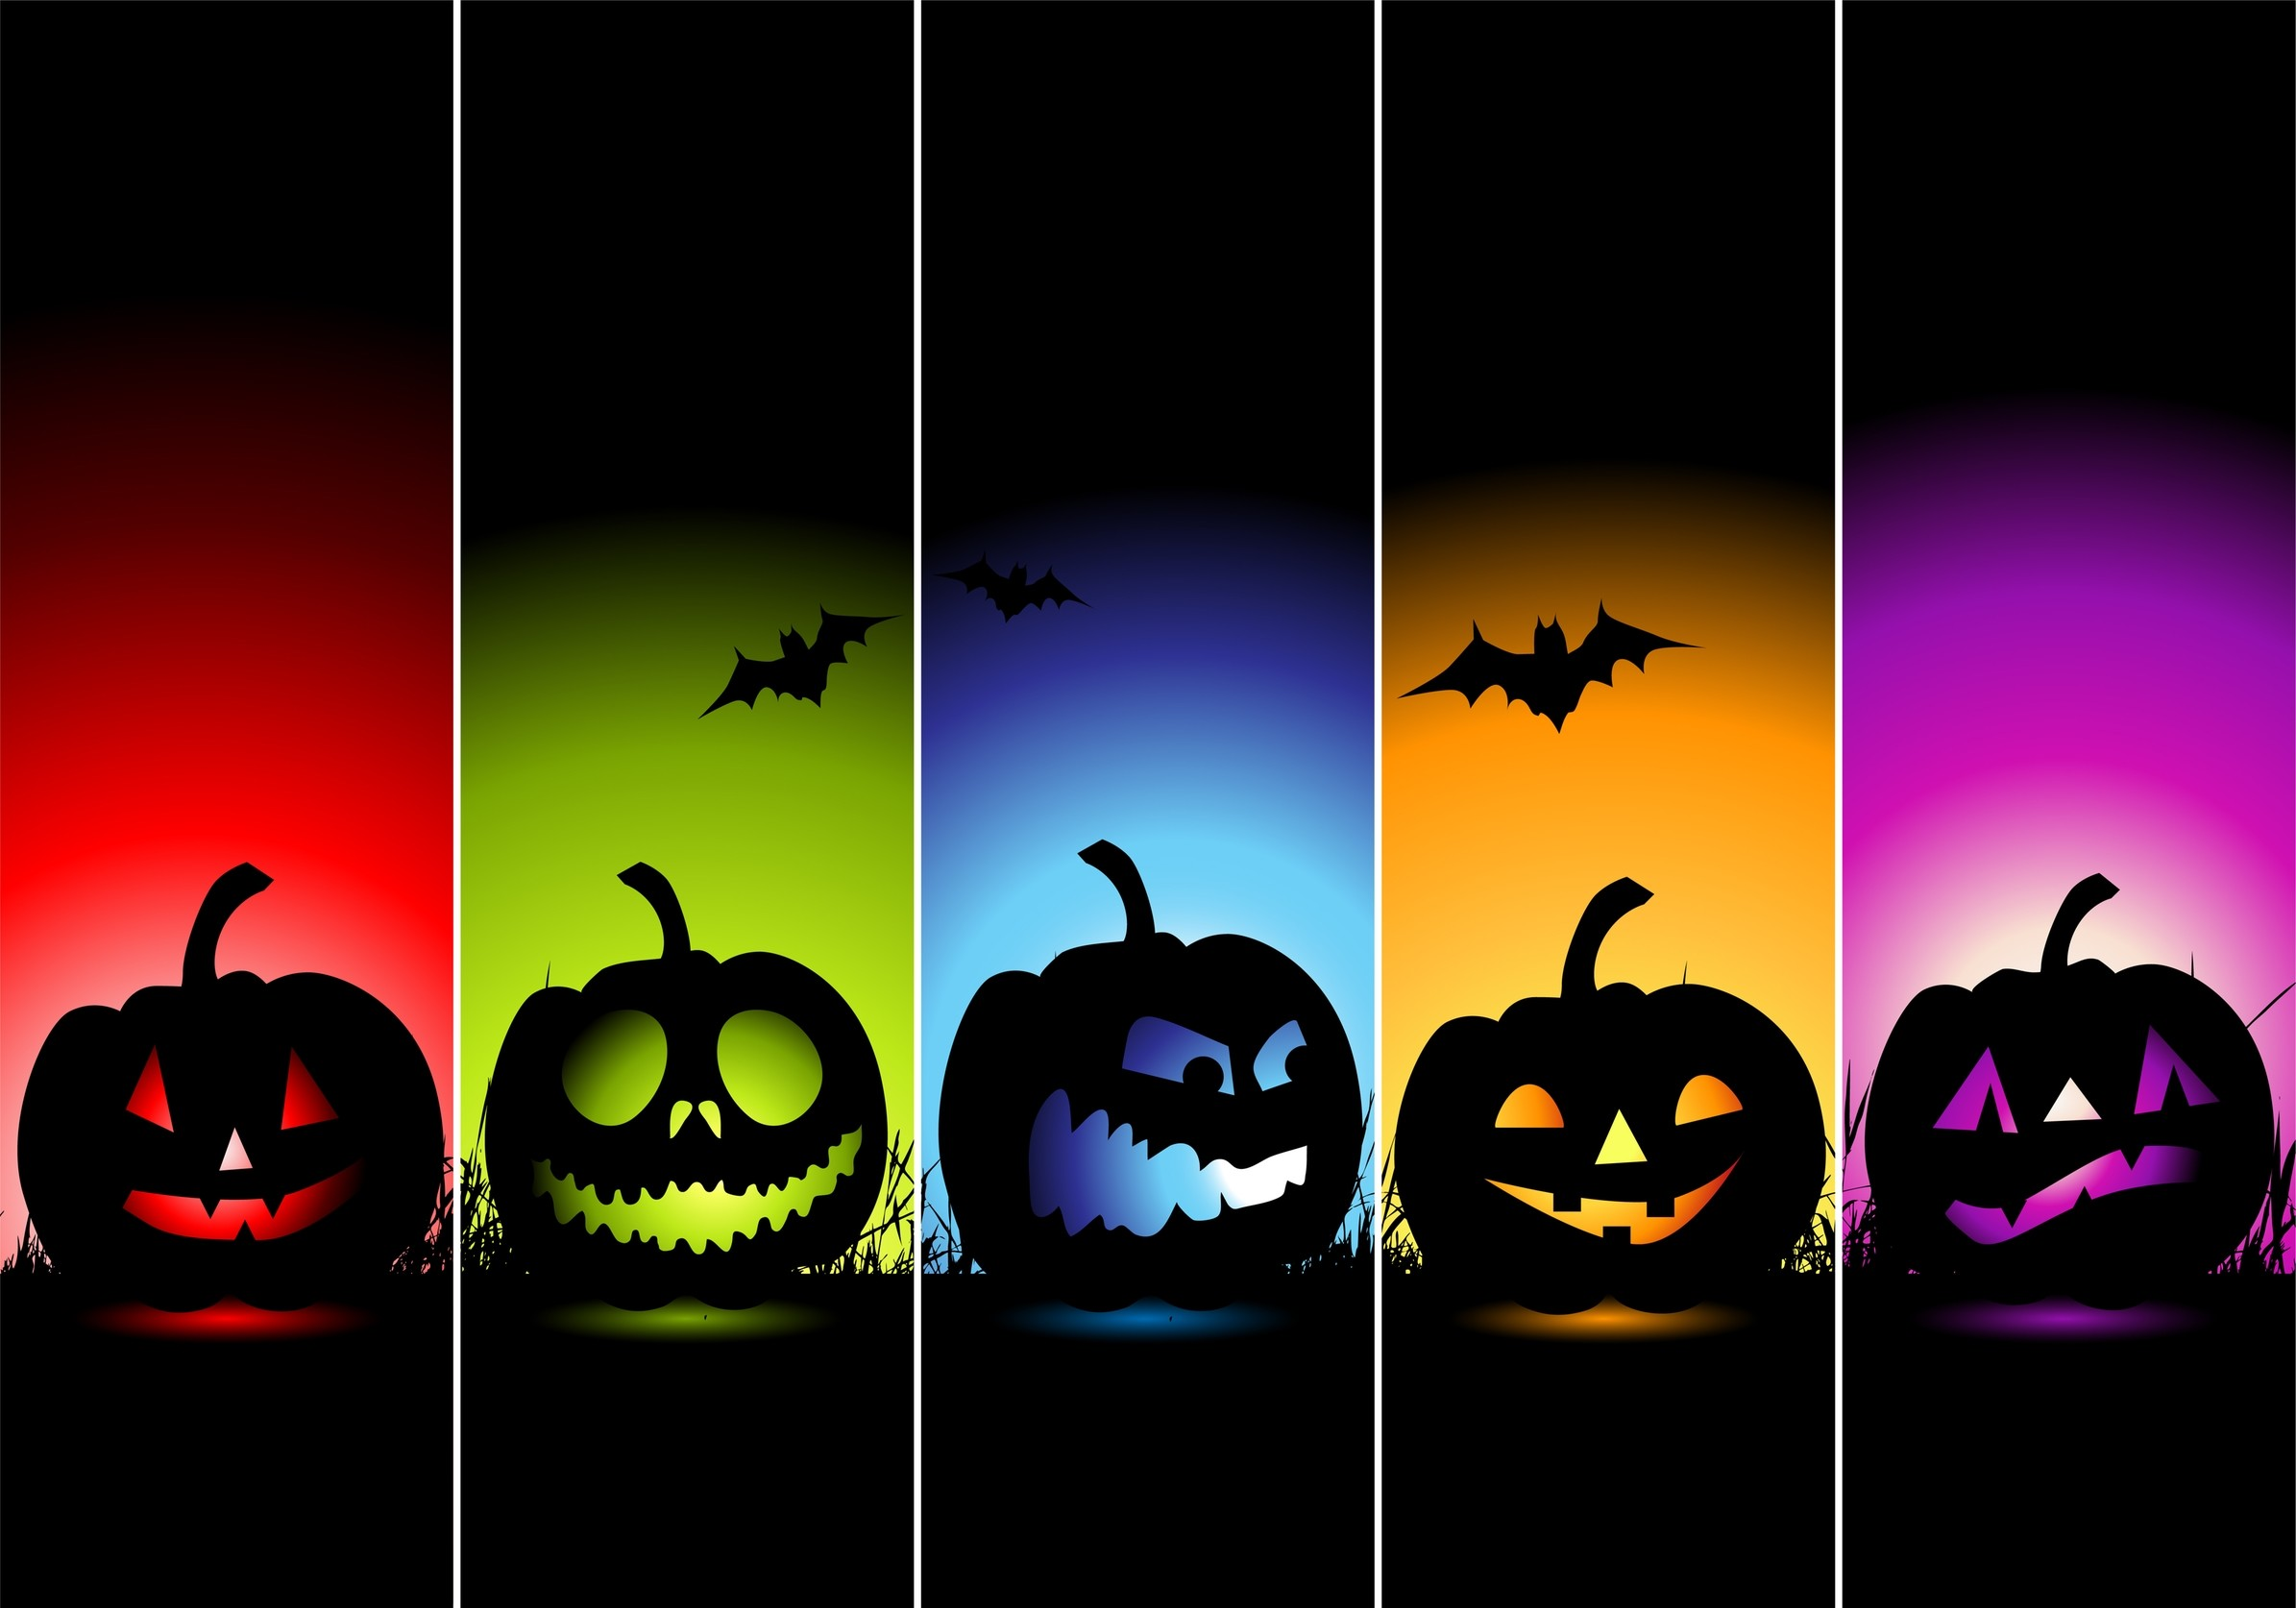 2390x1674 halloween | Best Halloween Backgrounds, wallpaper, wallpaper hd, Best  Halloween .